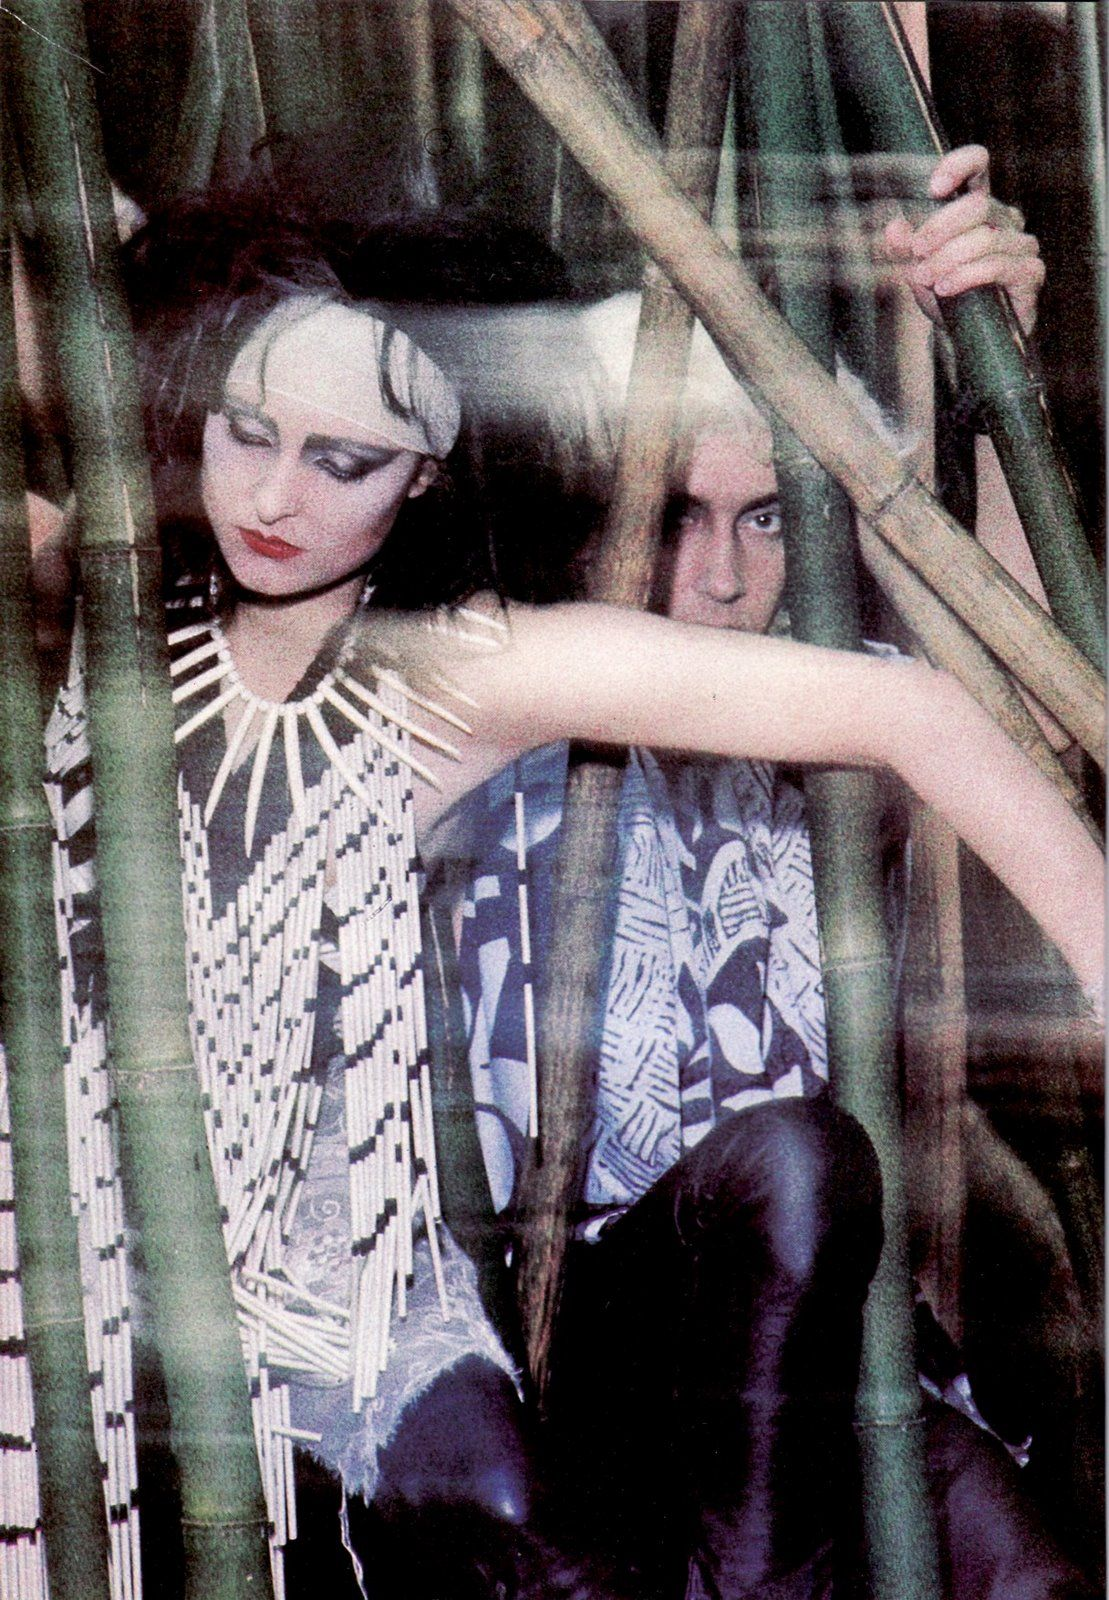 The Creatures: Siouxsie Sioux & Budgie in Hawaii, 1983.